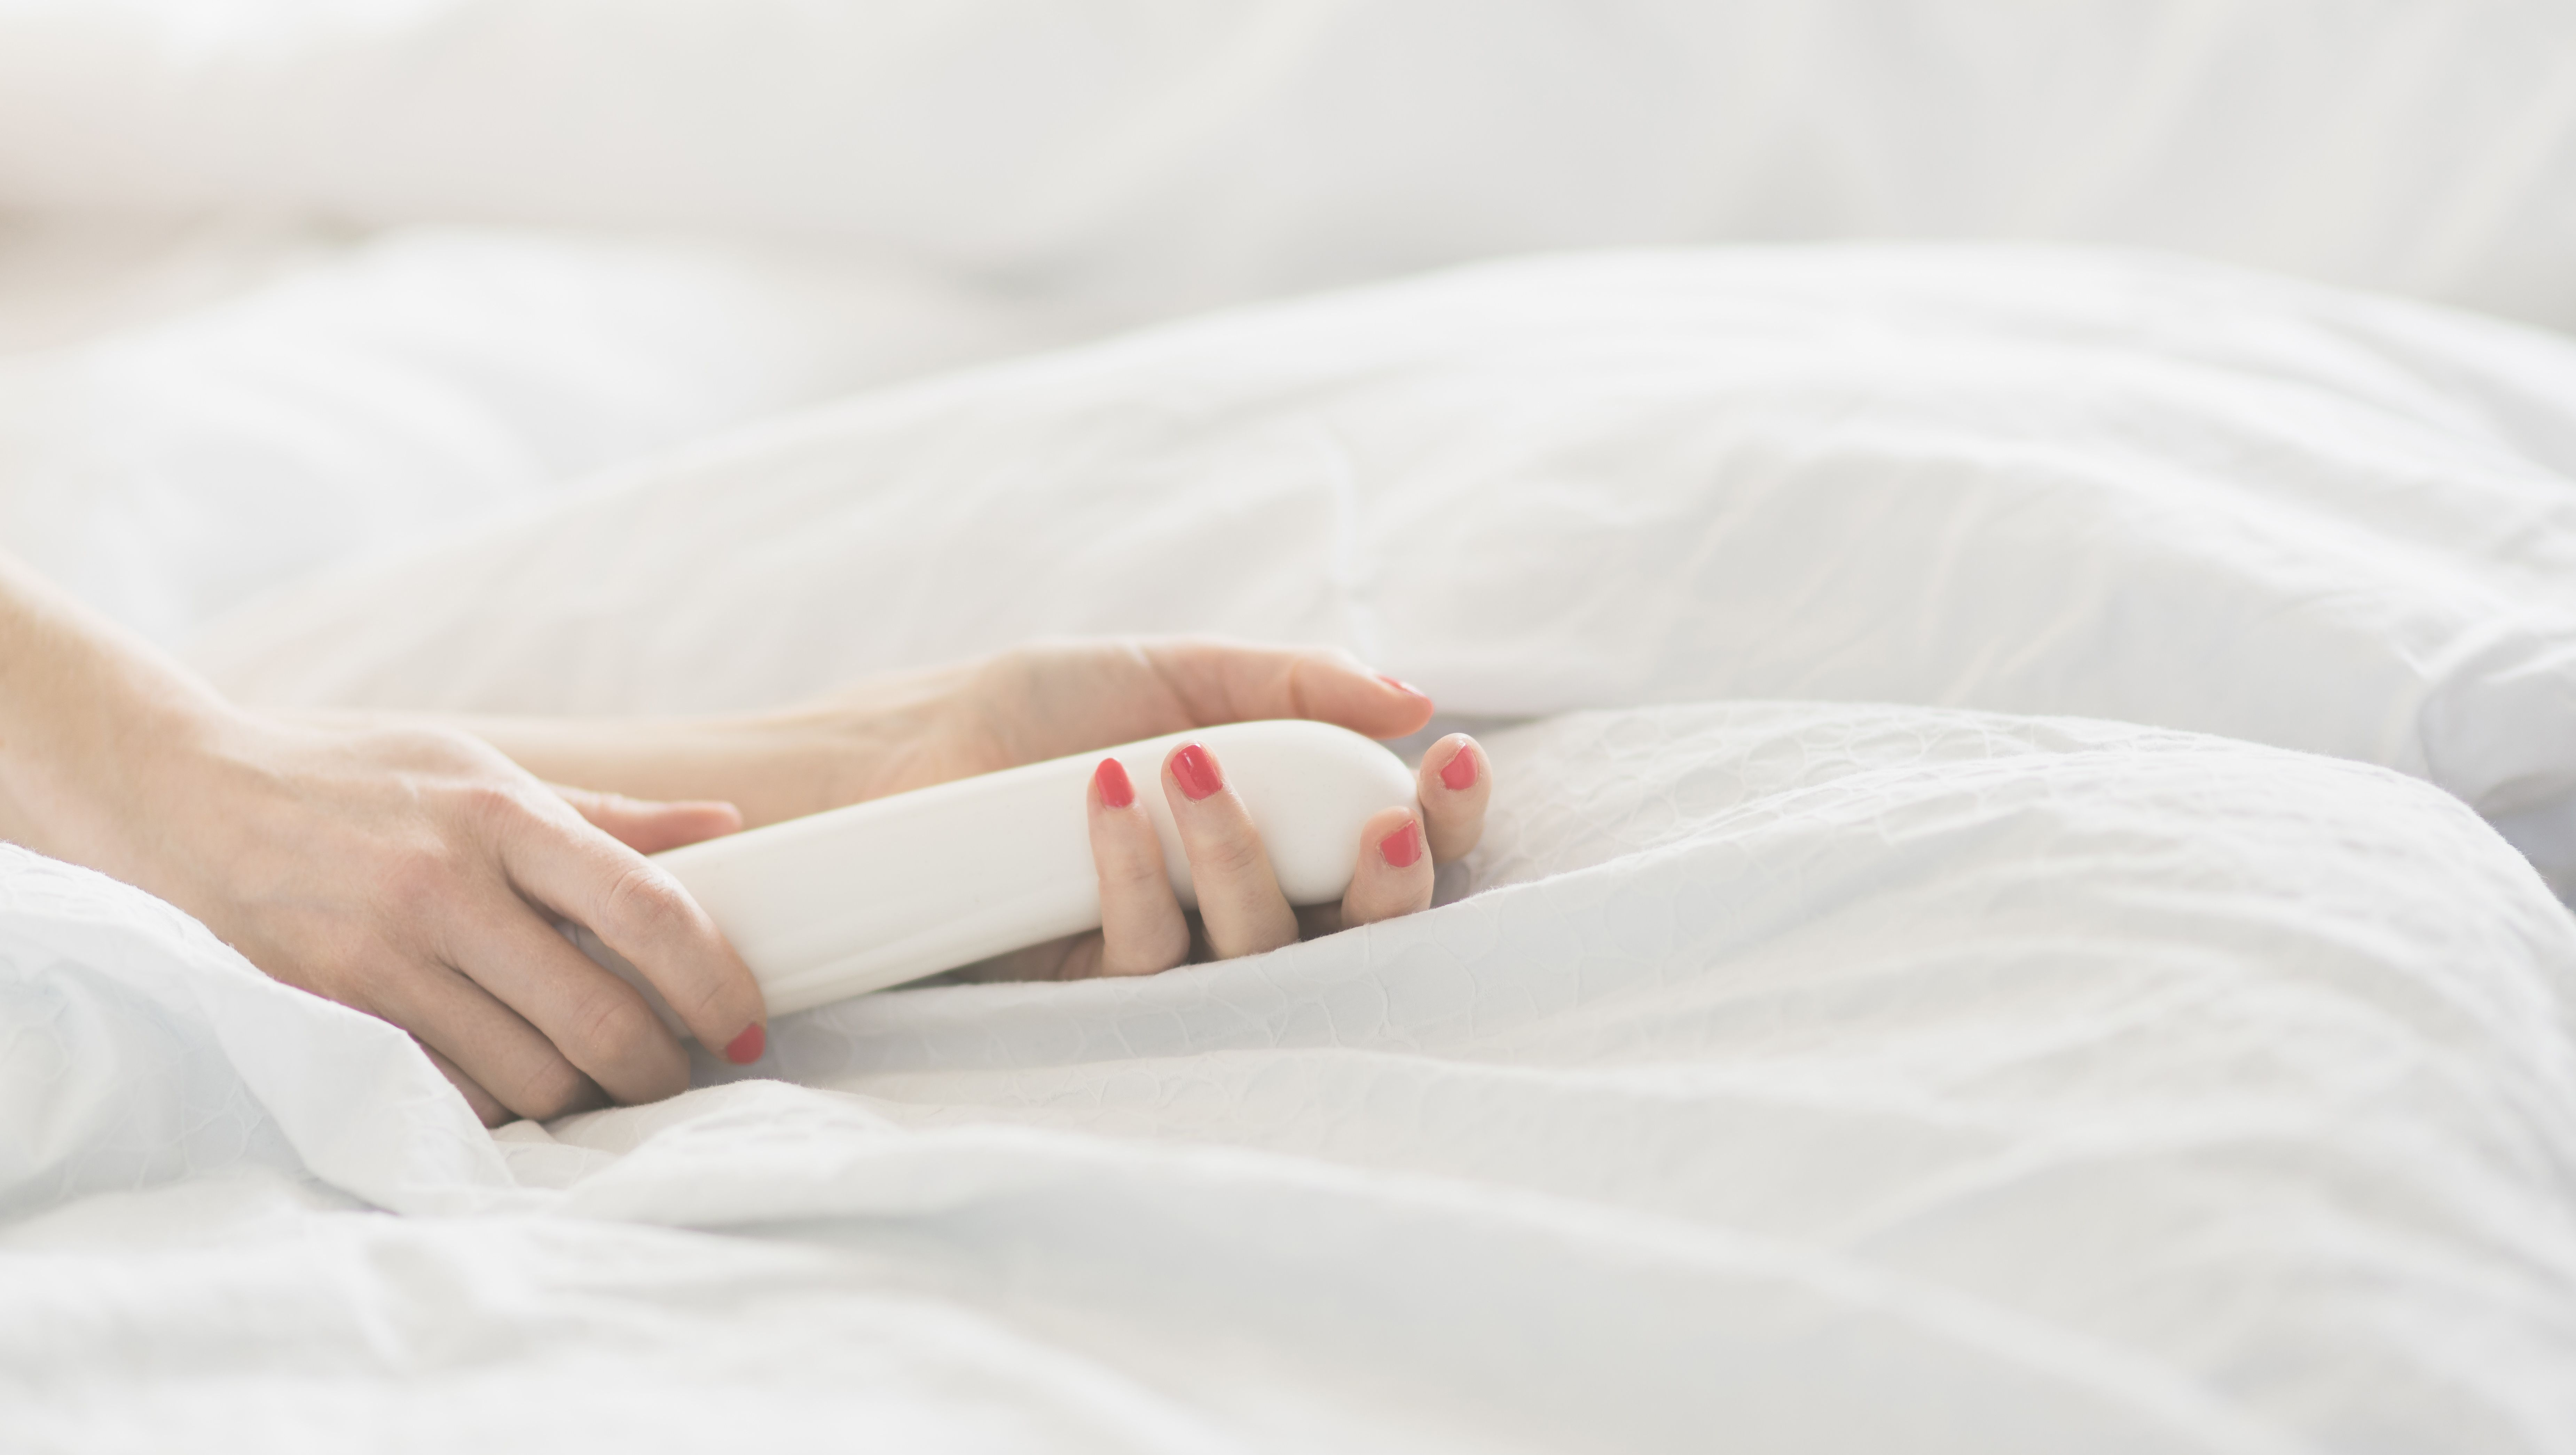 Lovehoney is offering up to 50% off vibrators for Black Friday